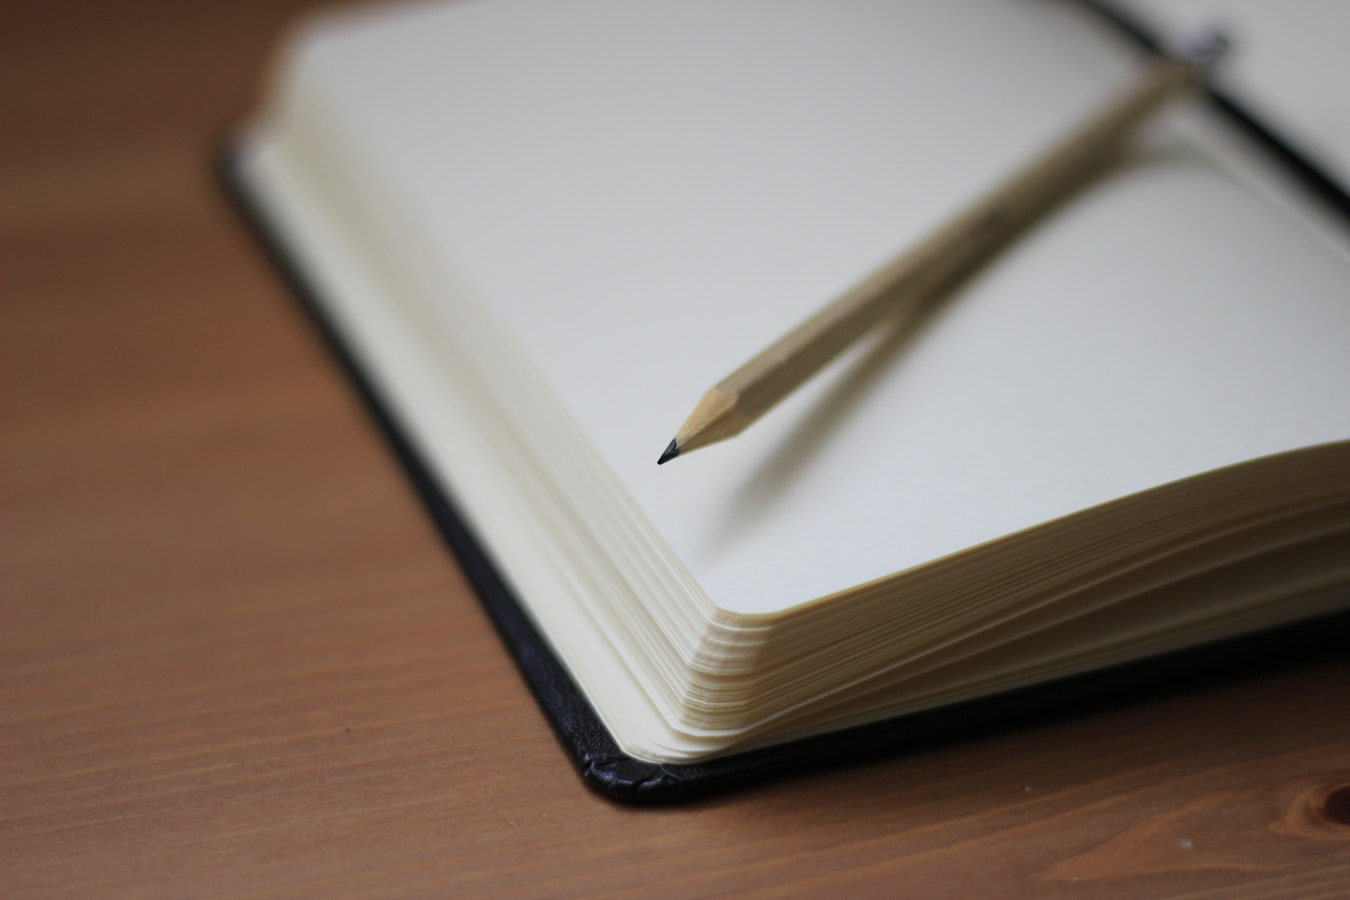 A notepad with a pencil on the open pages. Taking notes is one of the best communication strategies for dementia care.